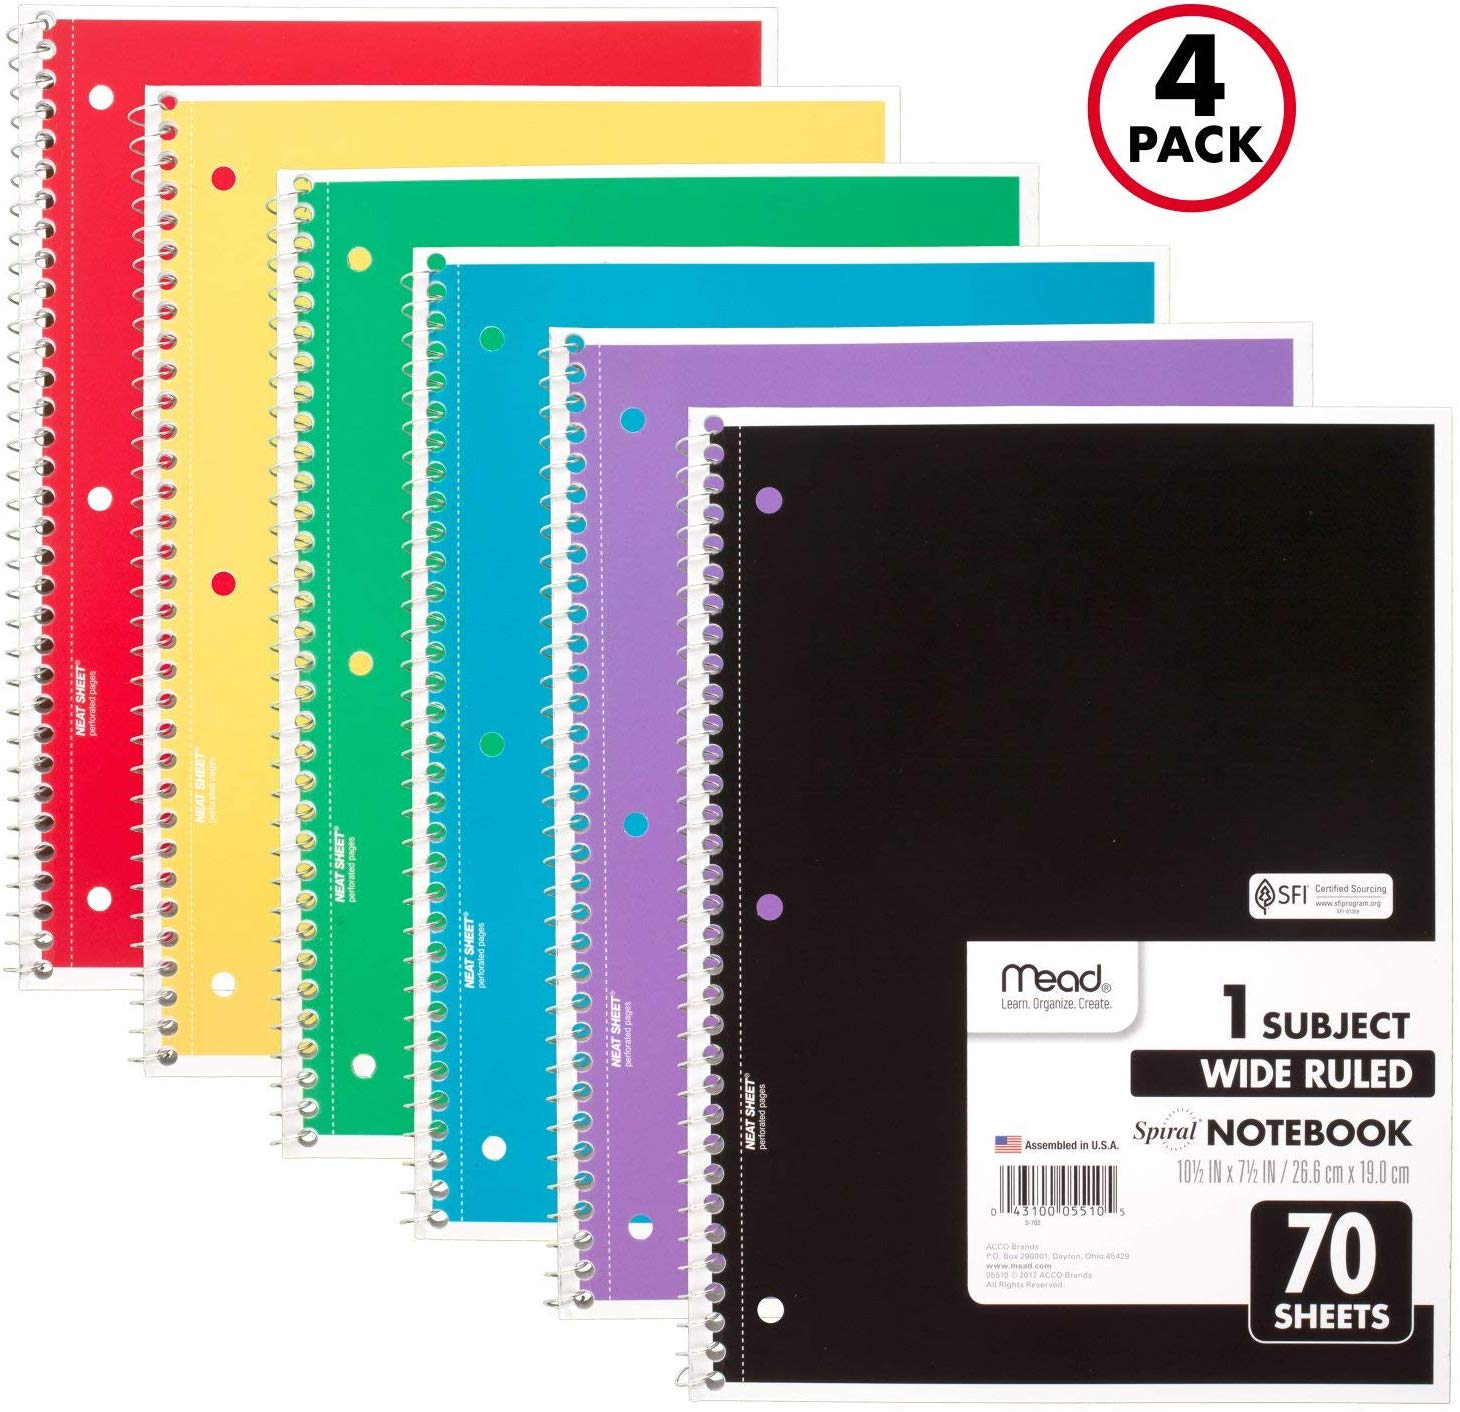 4 Pack Mead Spiral Notebooks only $2.36 with coupon! (was $7.36)